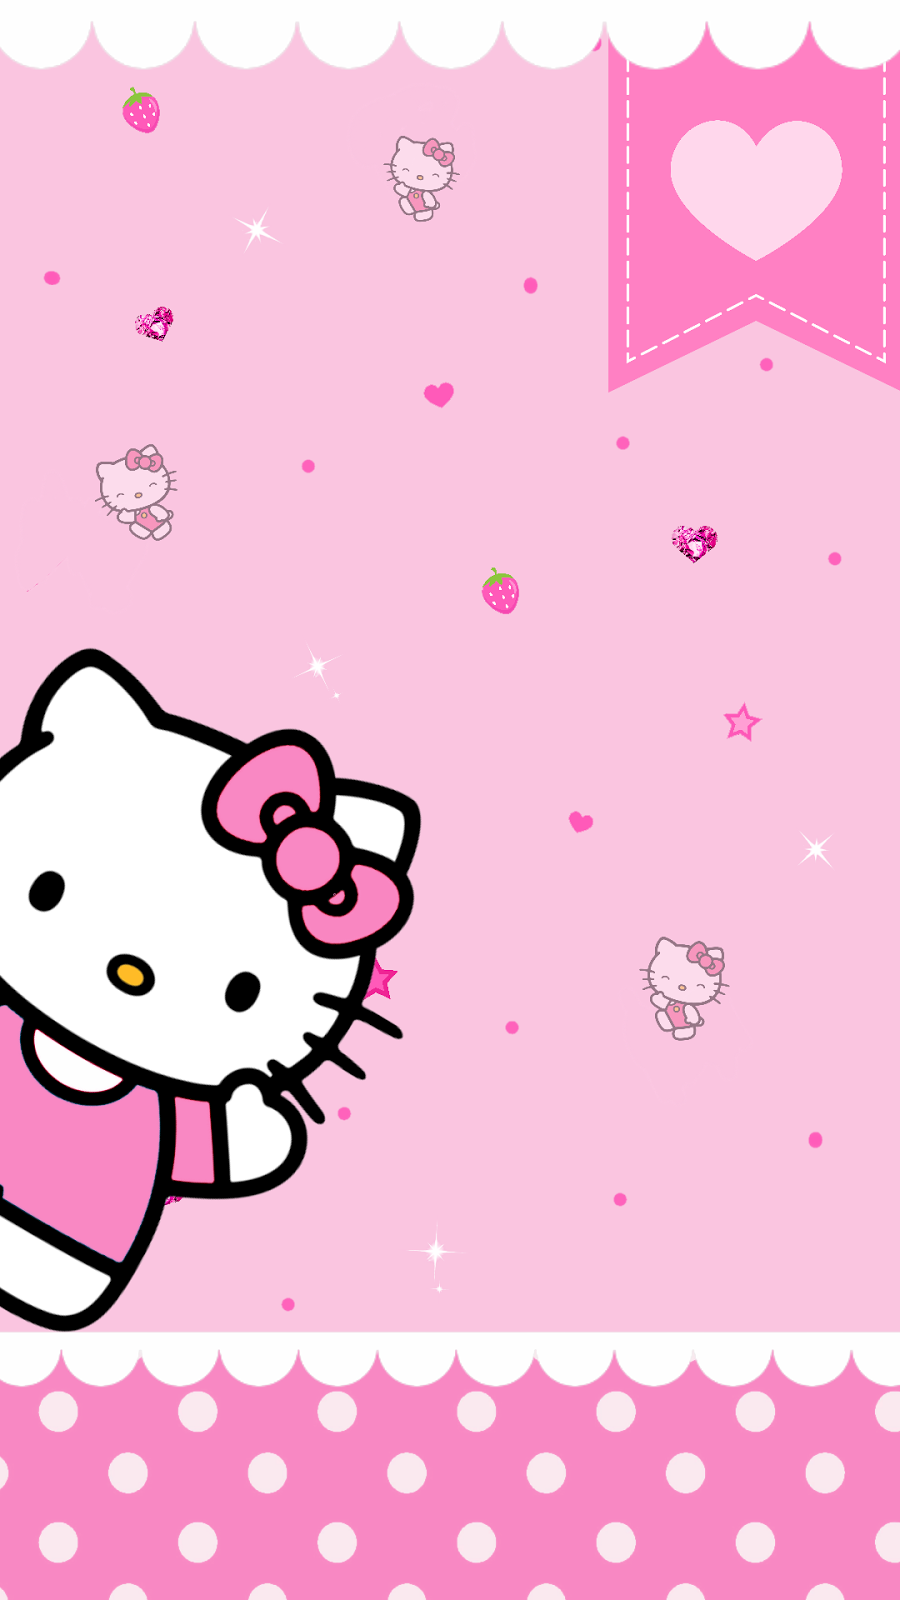 Pin Oleh Rey Carlo Di Hello Kitty